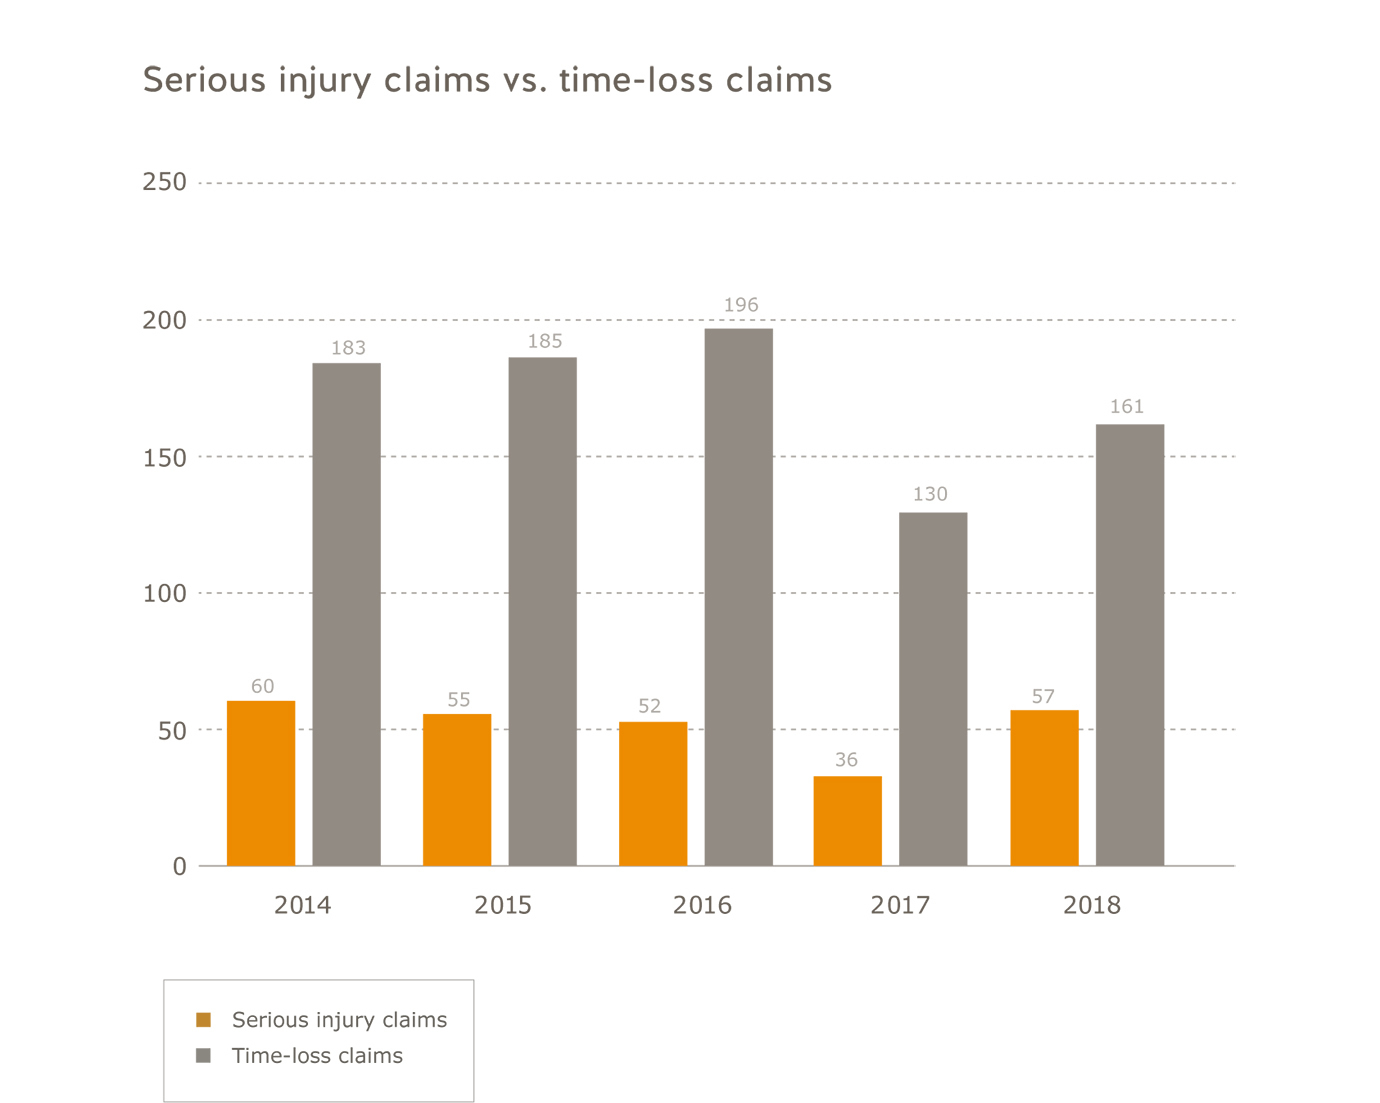 Commercial fishing sector serious injury claims vs. time-loss claims for 2014 to 2018. Serious injury claims: 2014=60; 2015=55; 2016=52; 2017=36; 2018=57. Time-loss claims: 2014=183; 2015=185; 2016=196; 2017=130; 2018=161